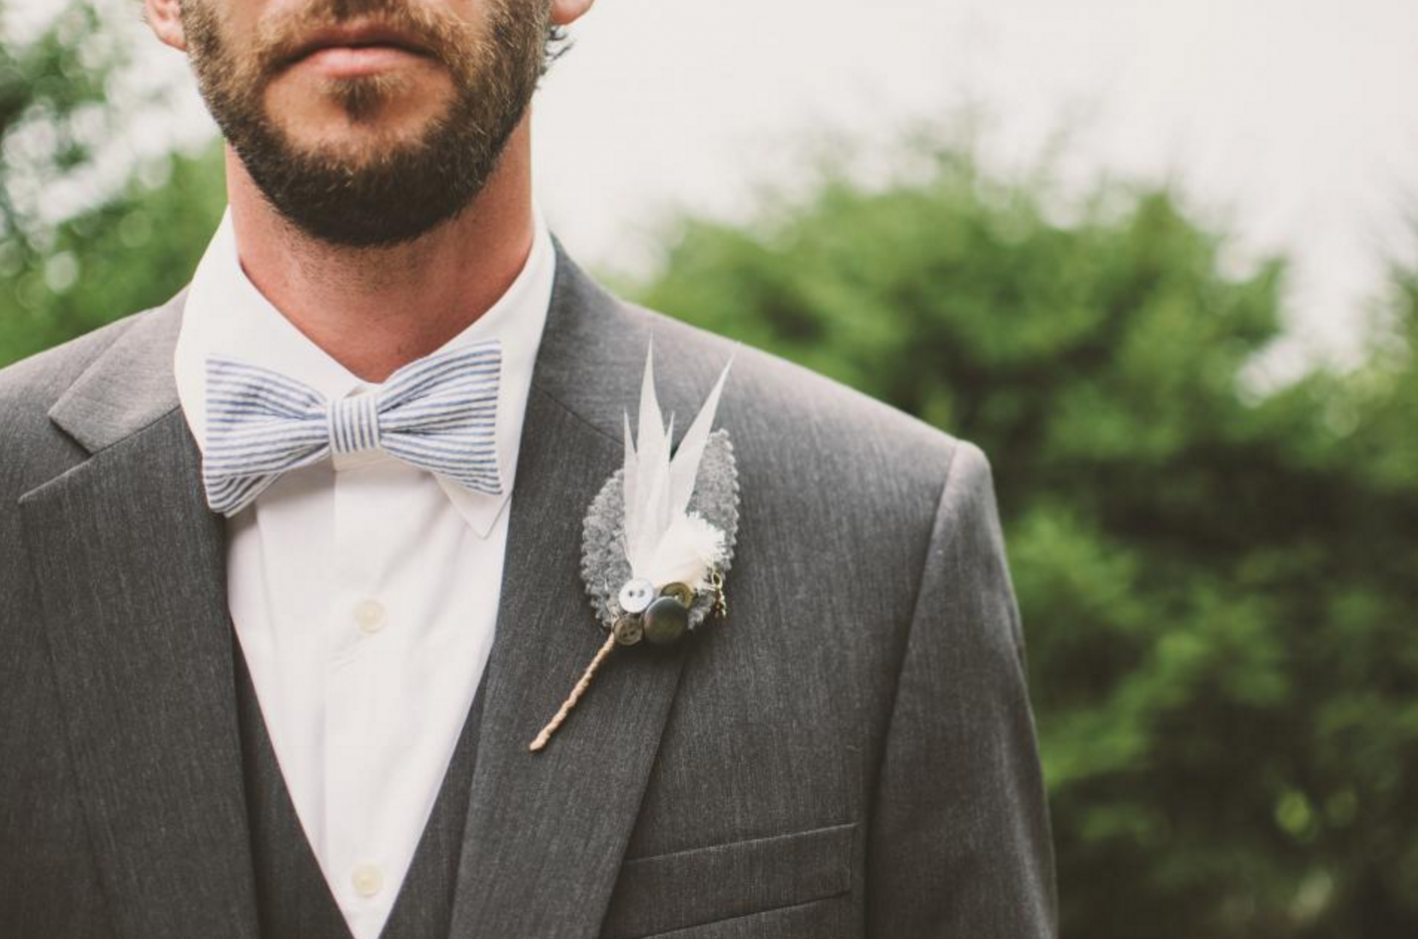 how to match your wedding date, wedding suit, wedding accessories, bow tie, tie, pocket square, lapel flower, summer suit, matching your date, should we match, outfit coordinating, men's summer style